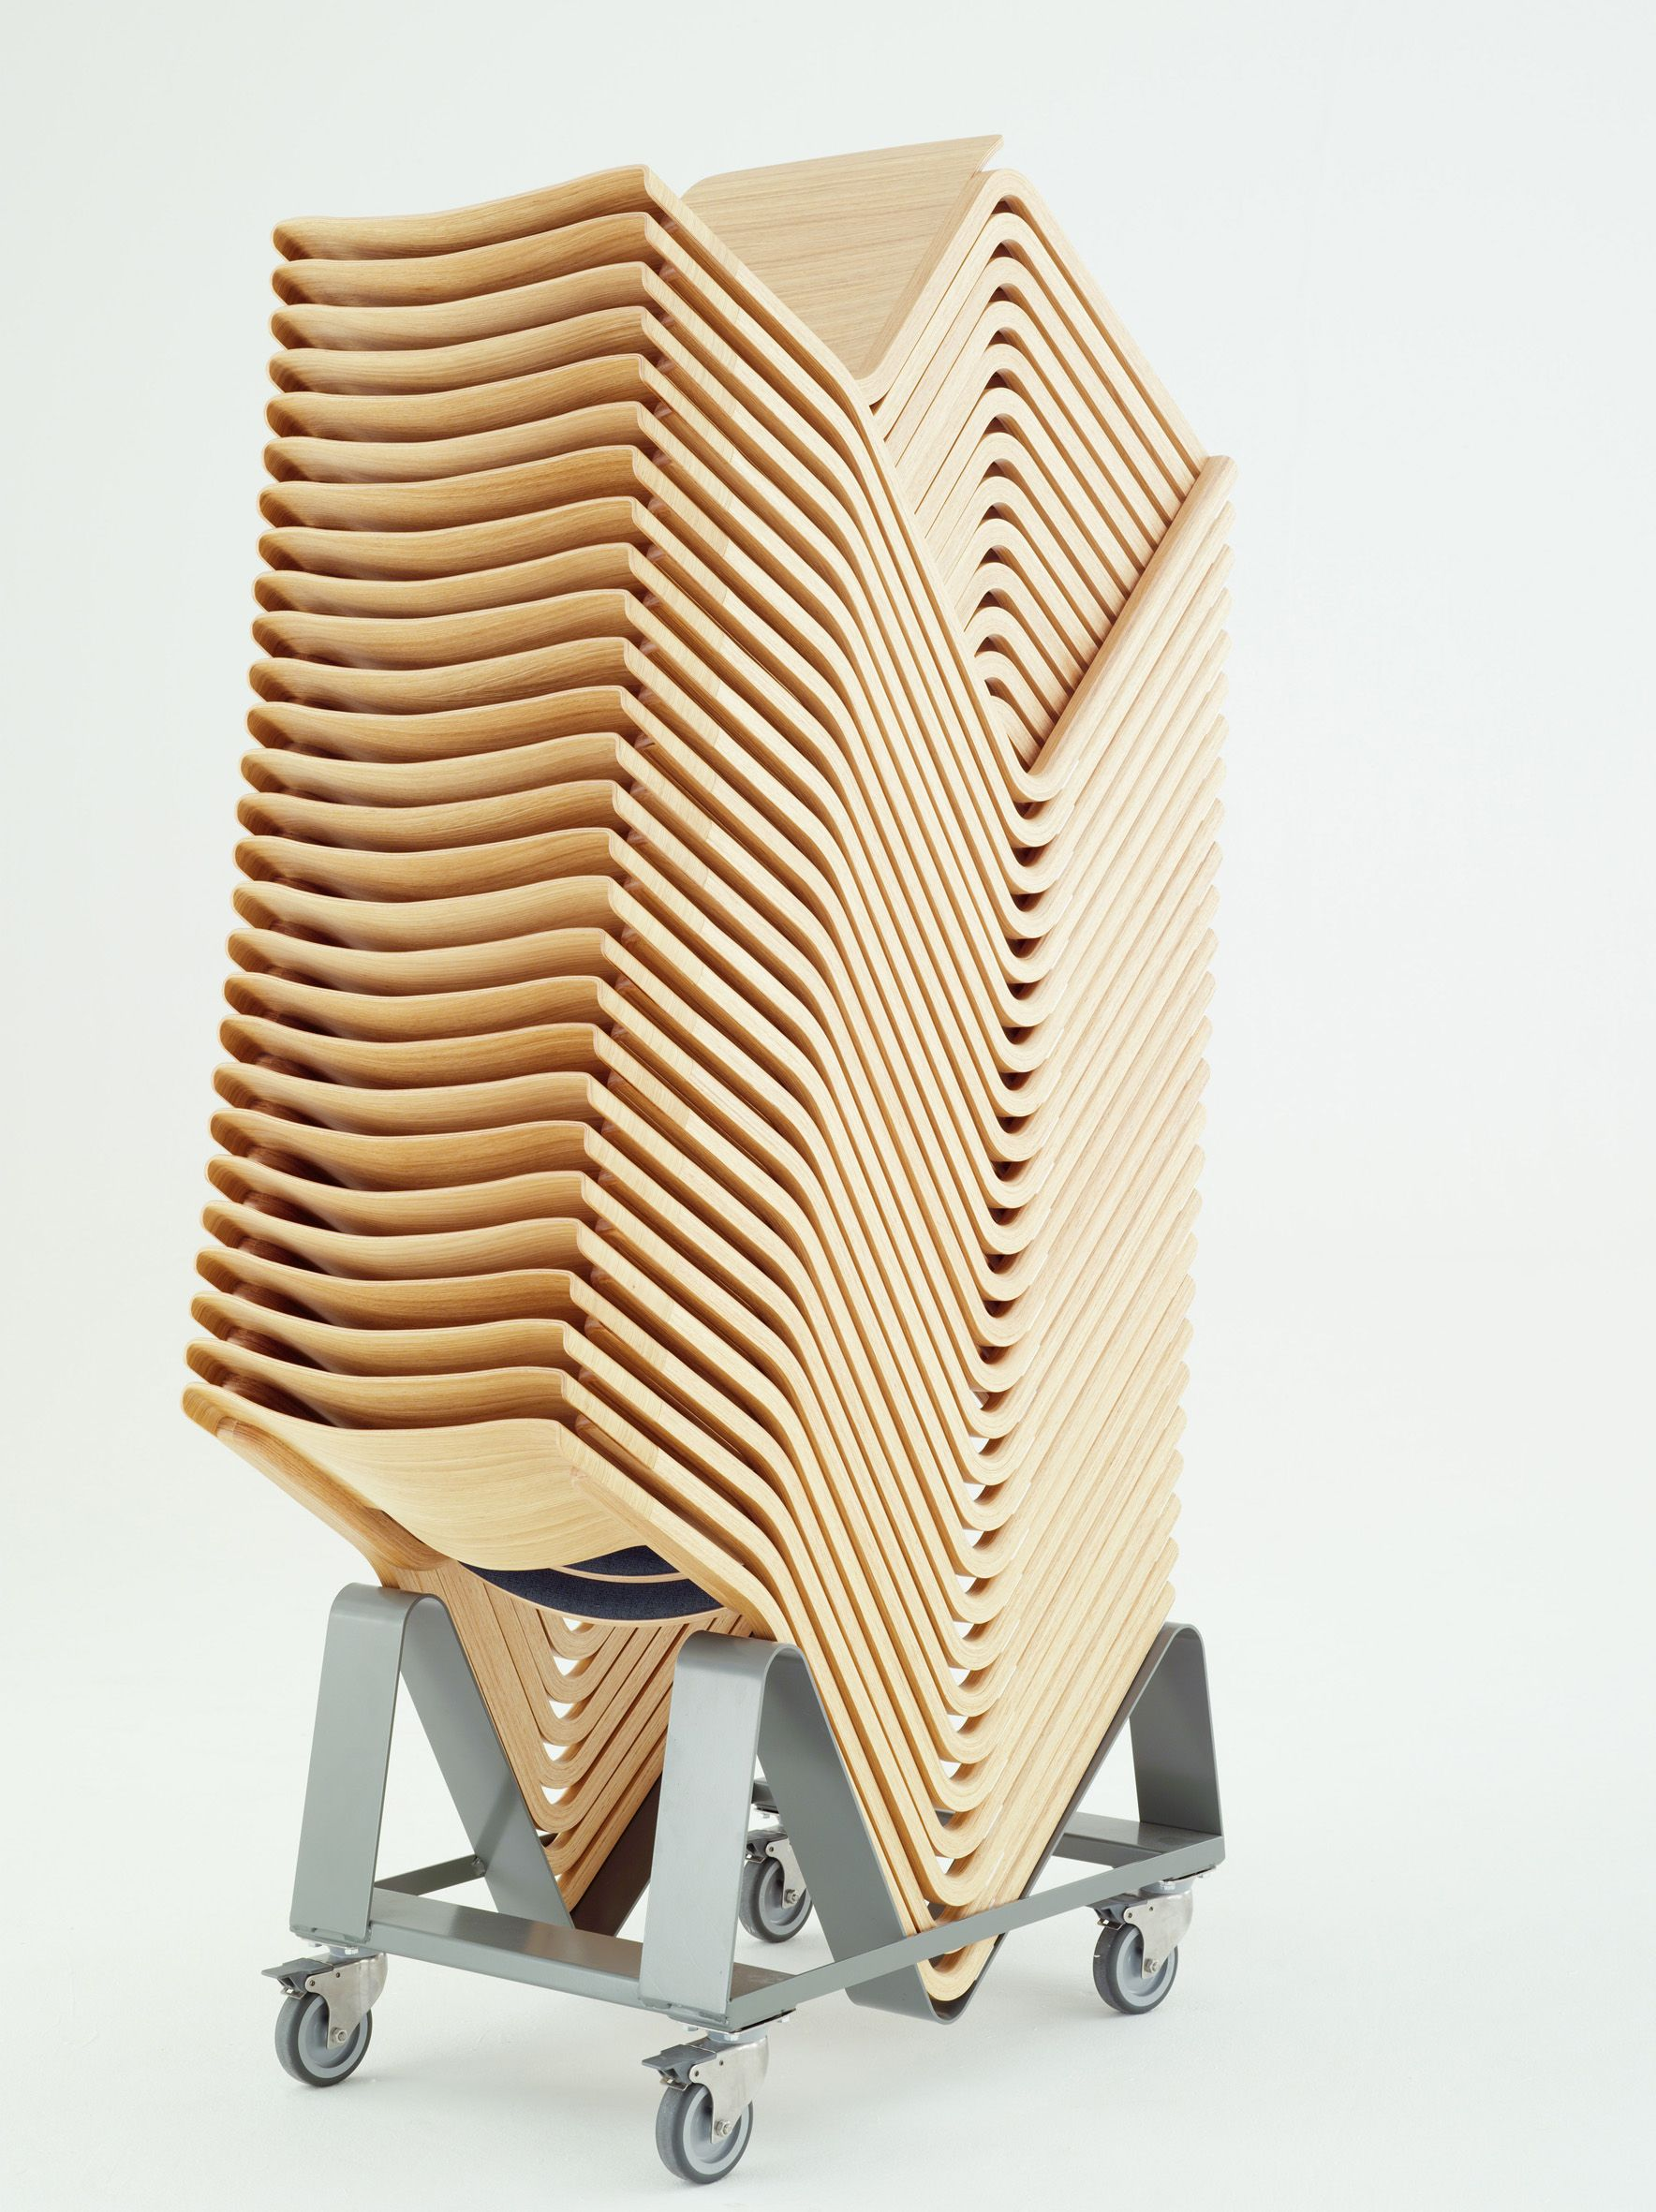 30 Theo chairs stacked!